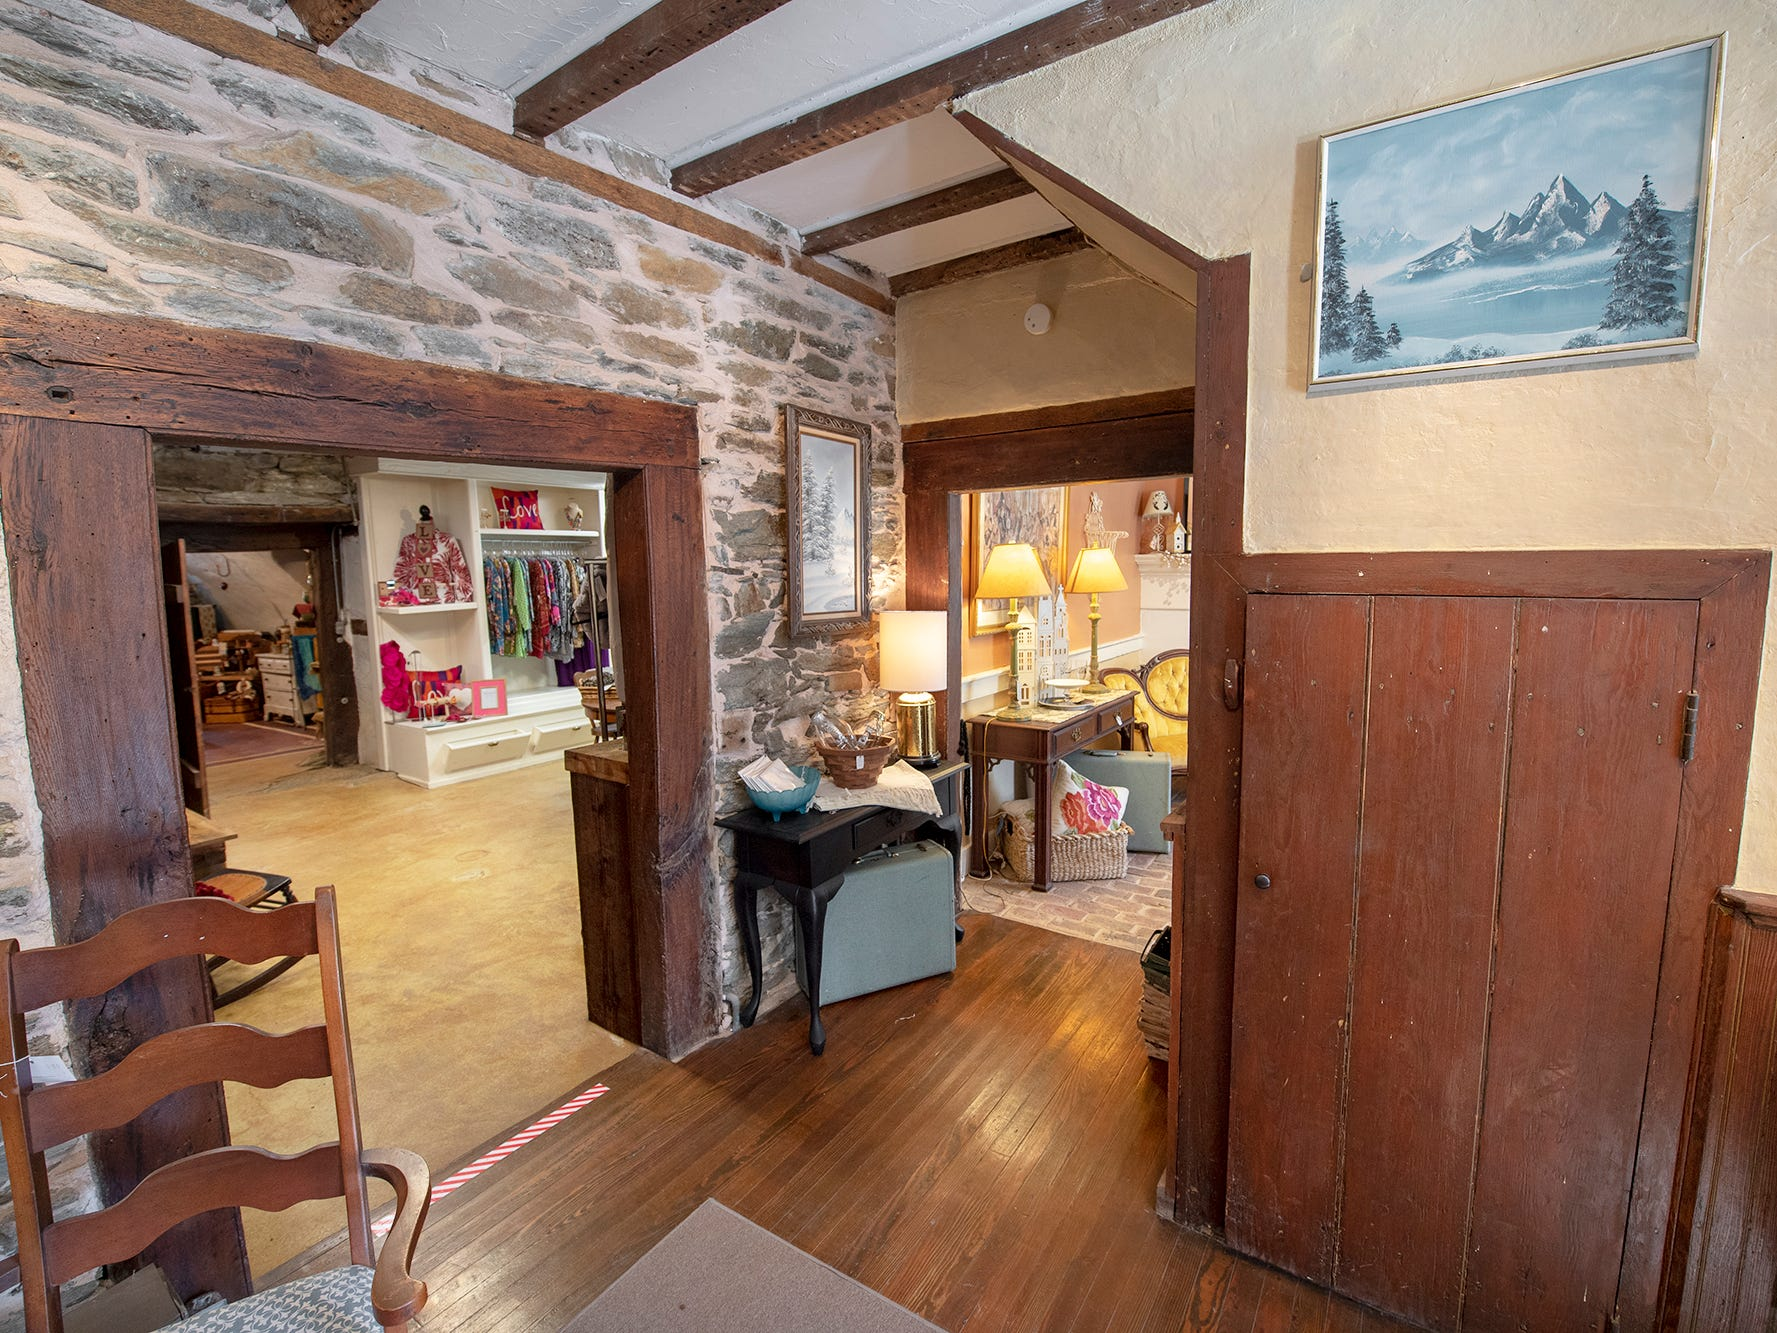 Notable wedding and event venue, the historic Stone Mill 1792 in York County, is for sale.